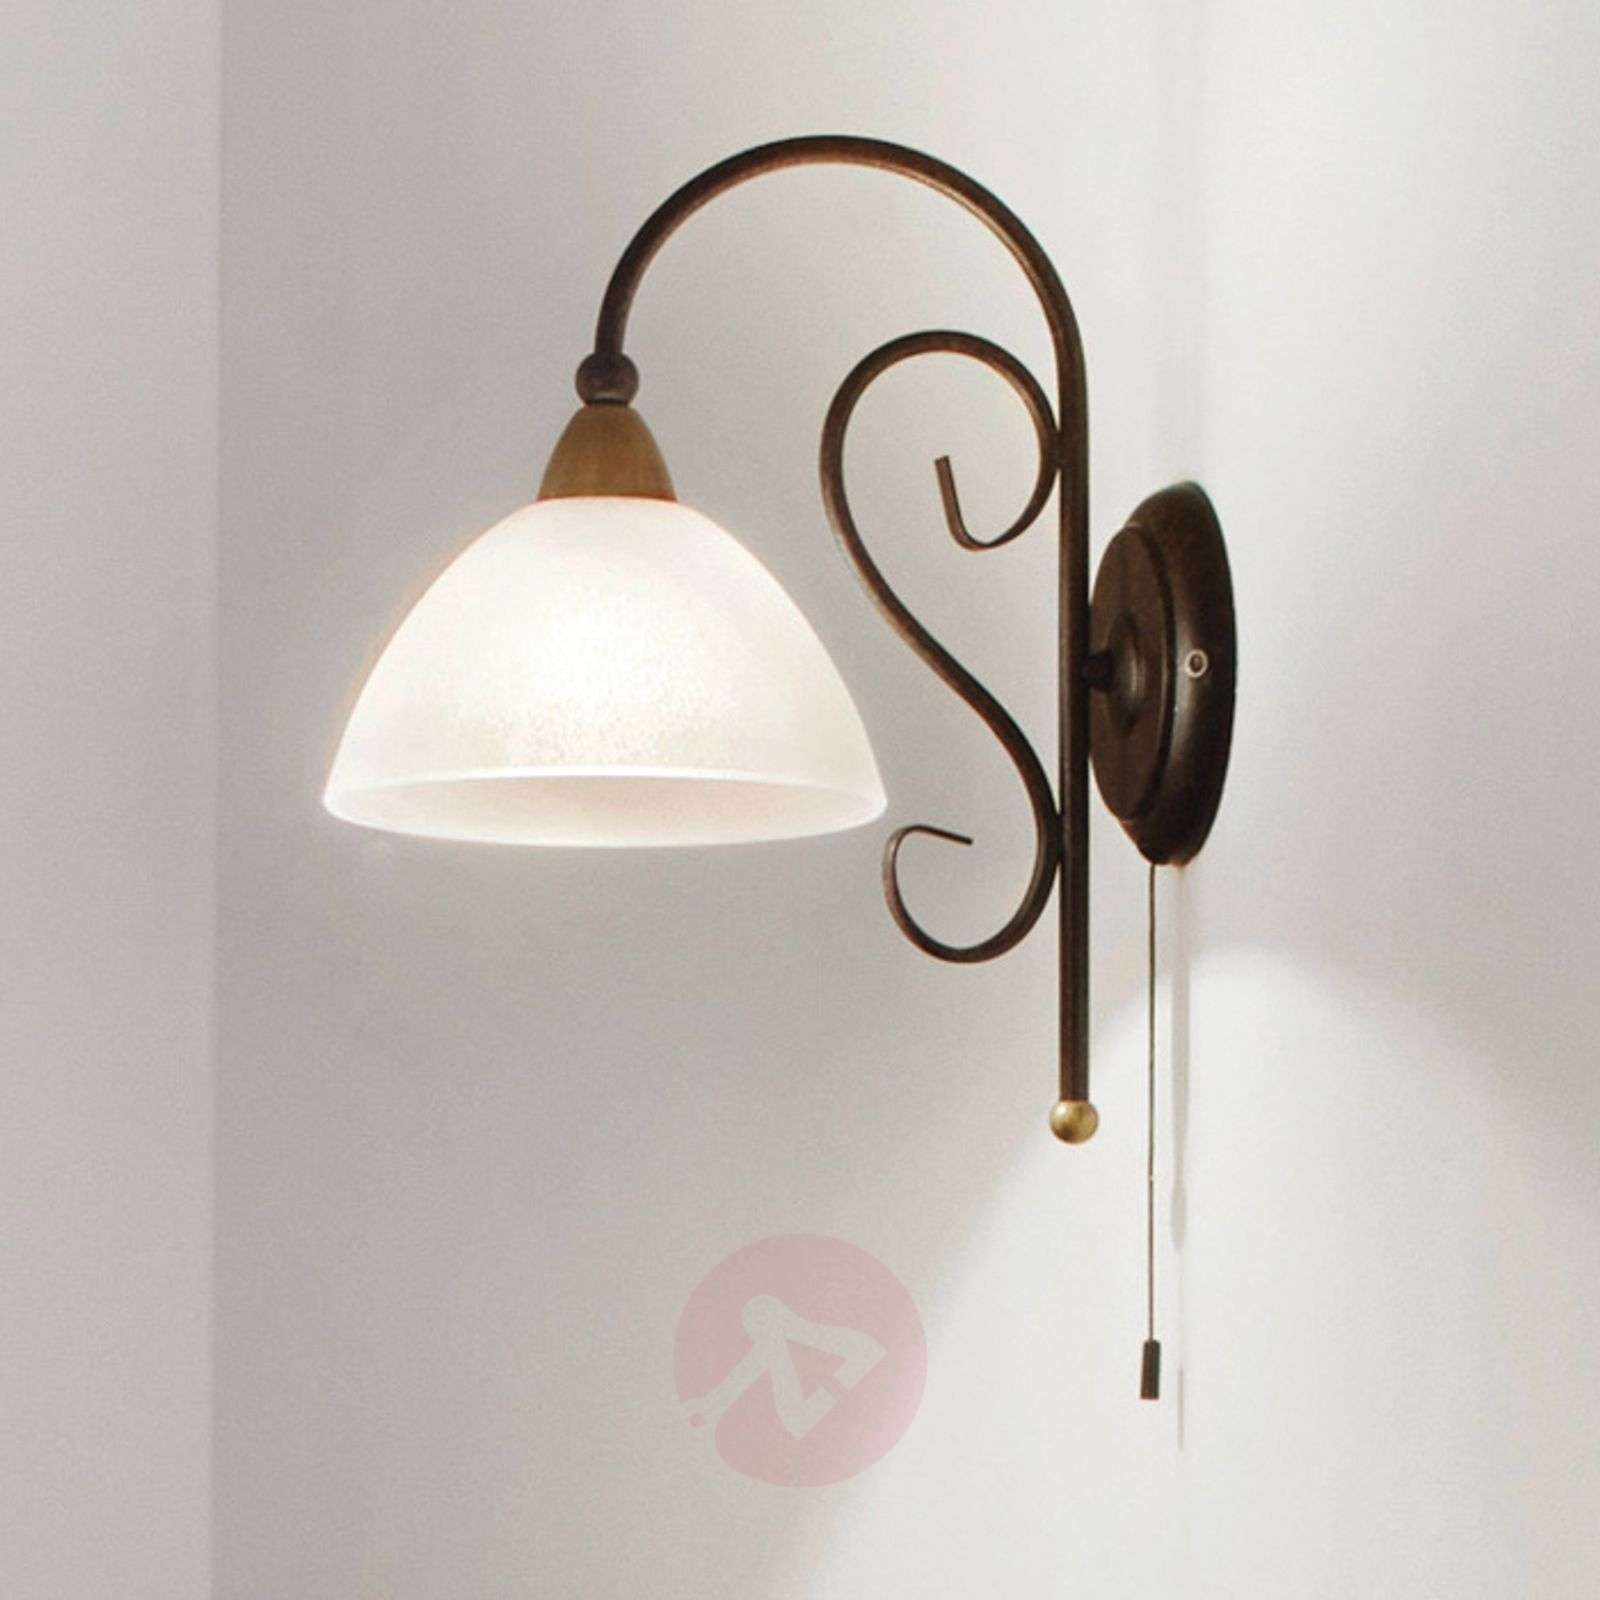 Delicate Wall Light Midec With Pull Switch 3001182 01